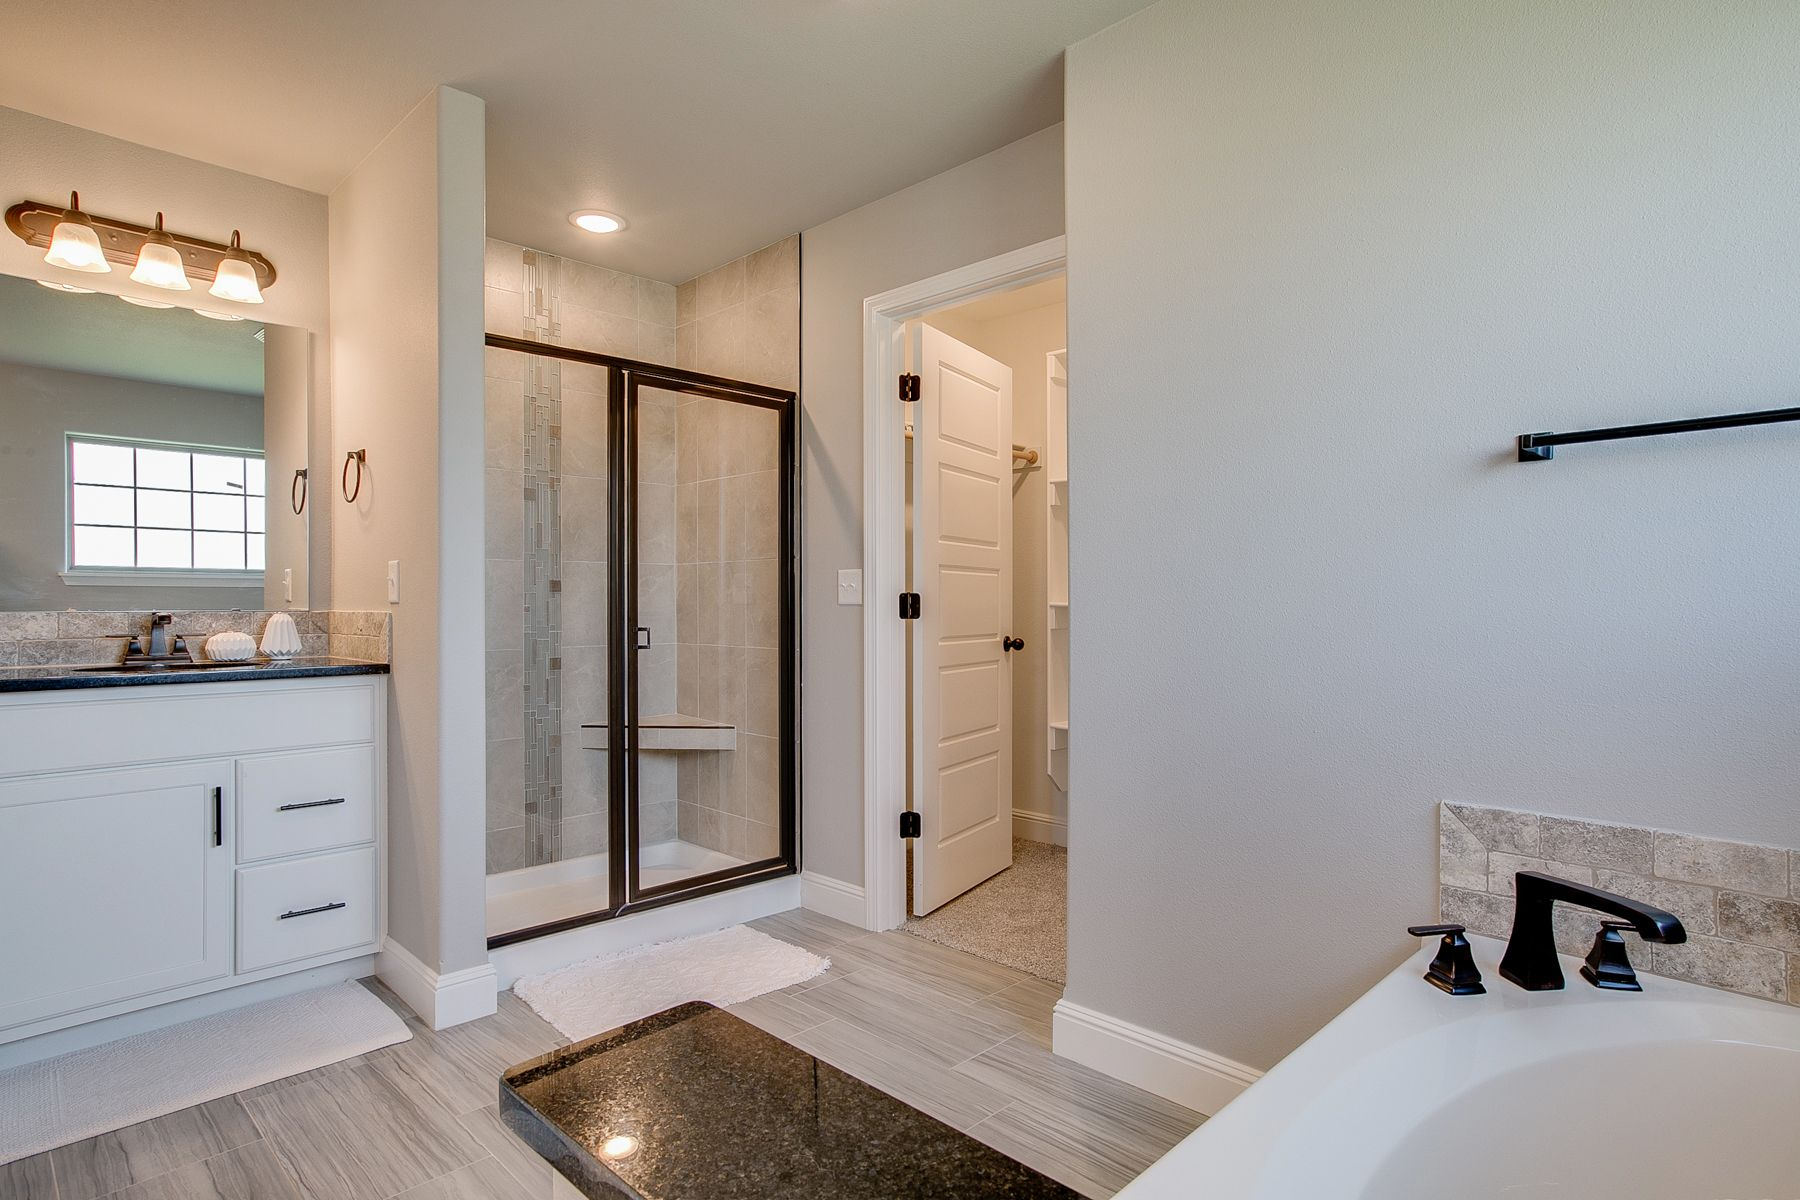 Bathroom featured in the 1700KI Series By Schuber Mitchell Homes in Fayetteville, AR